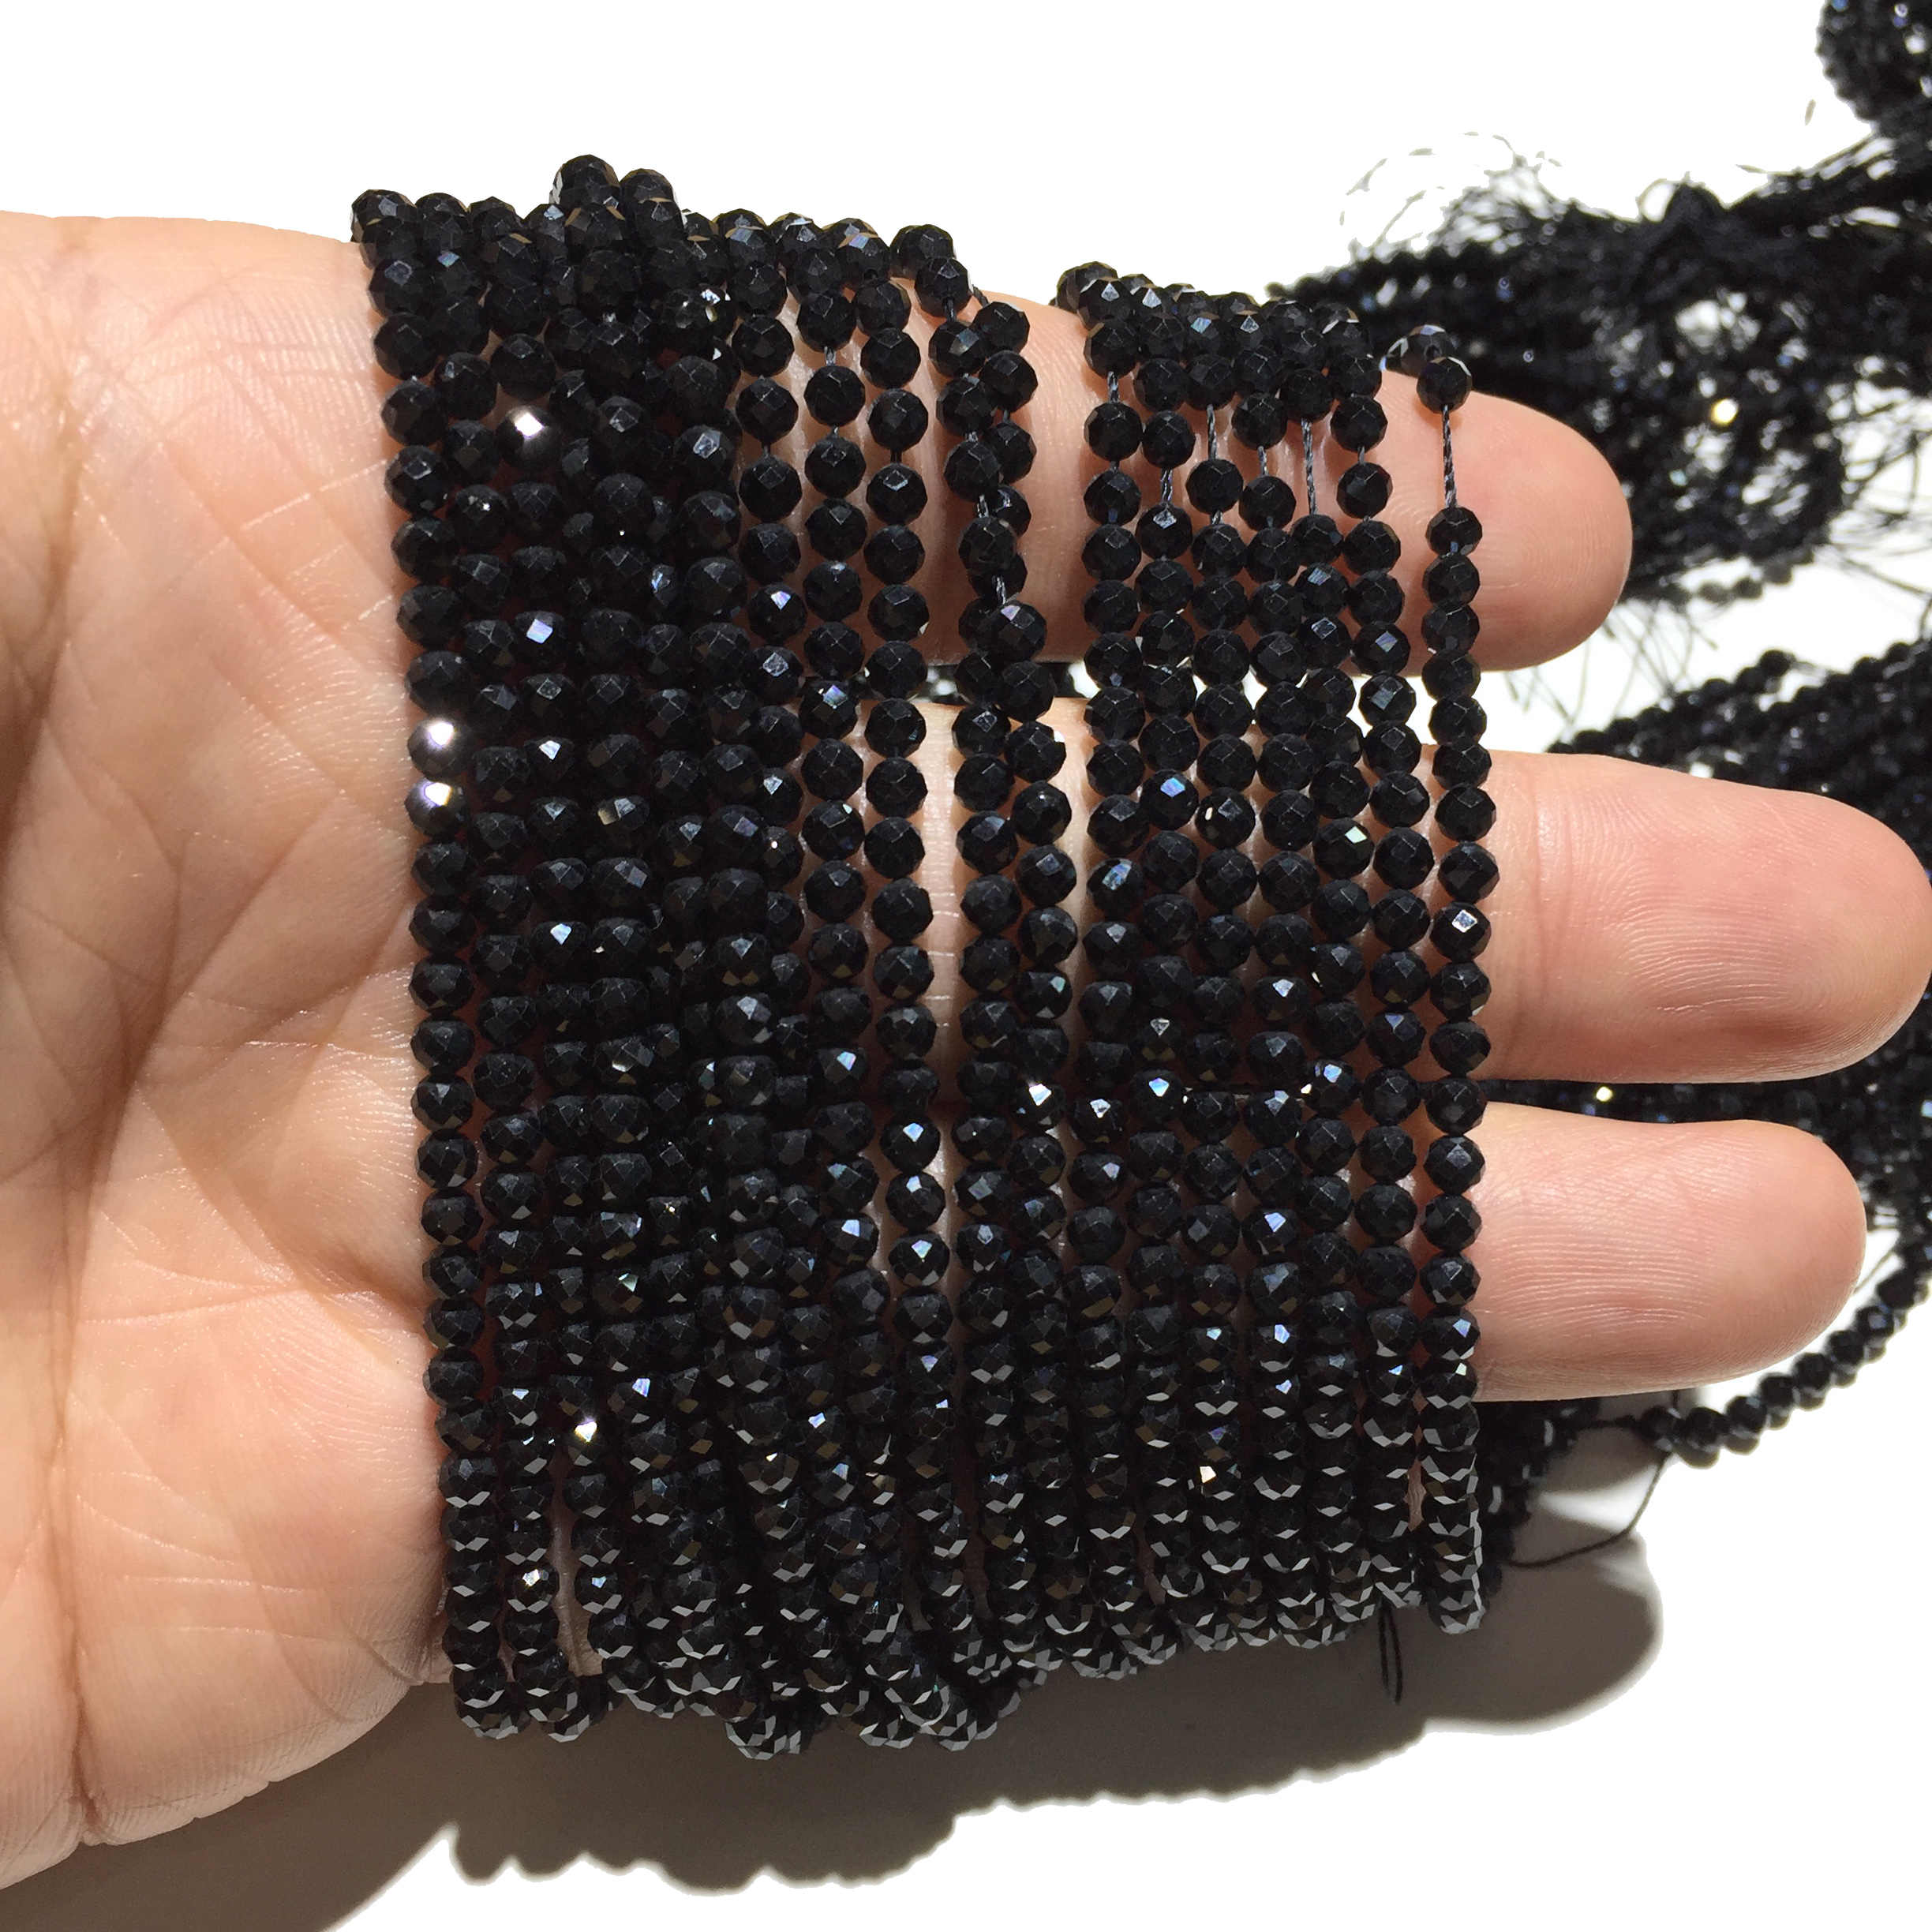 Natural Black Spinel Faceted tiny beads 2 mm   sparkling black gemstone beads  Choose 10 beads or a strand